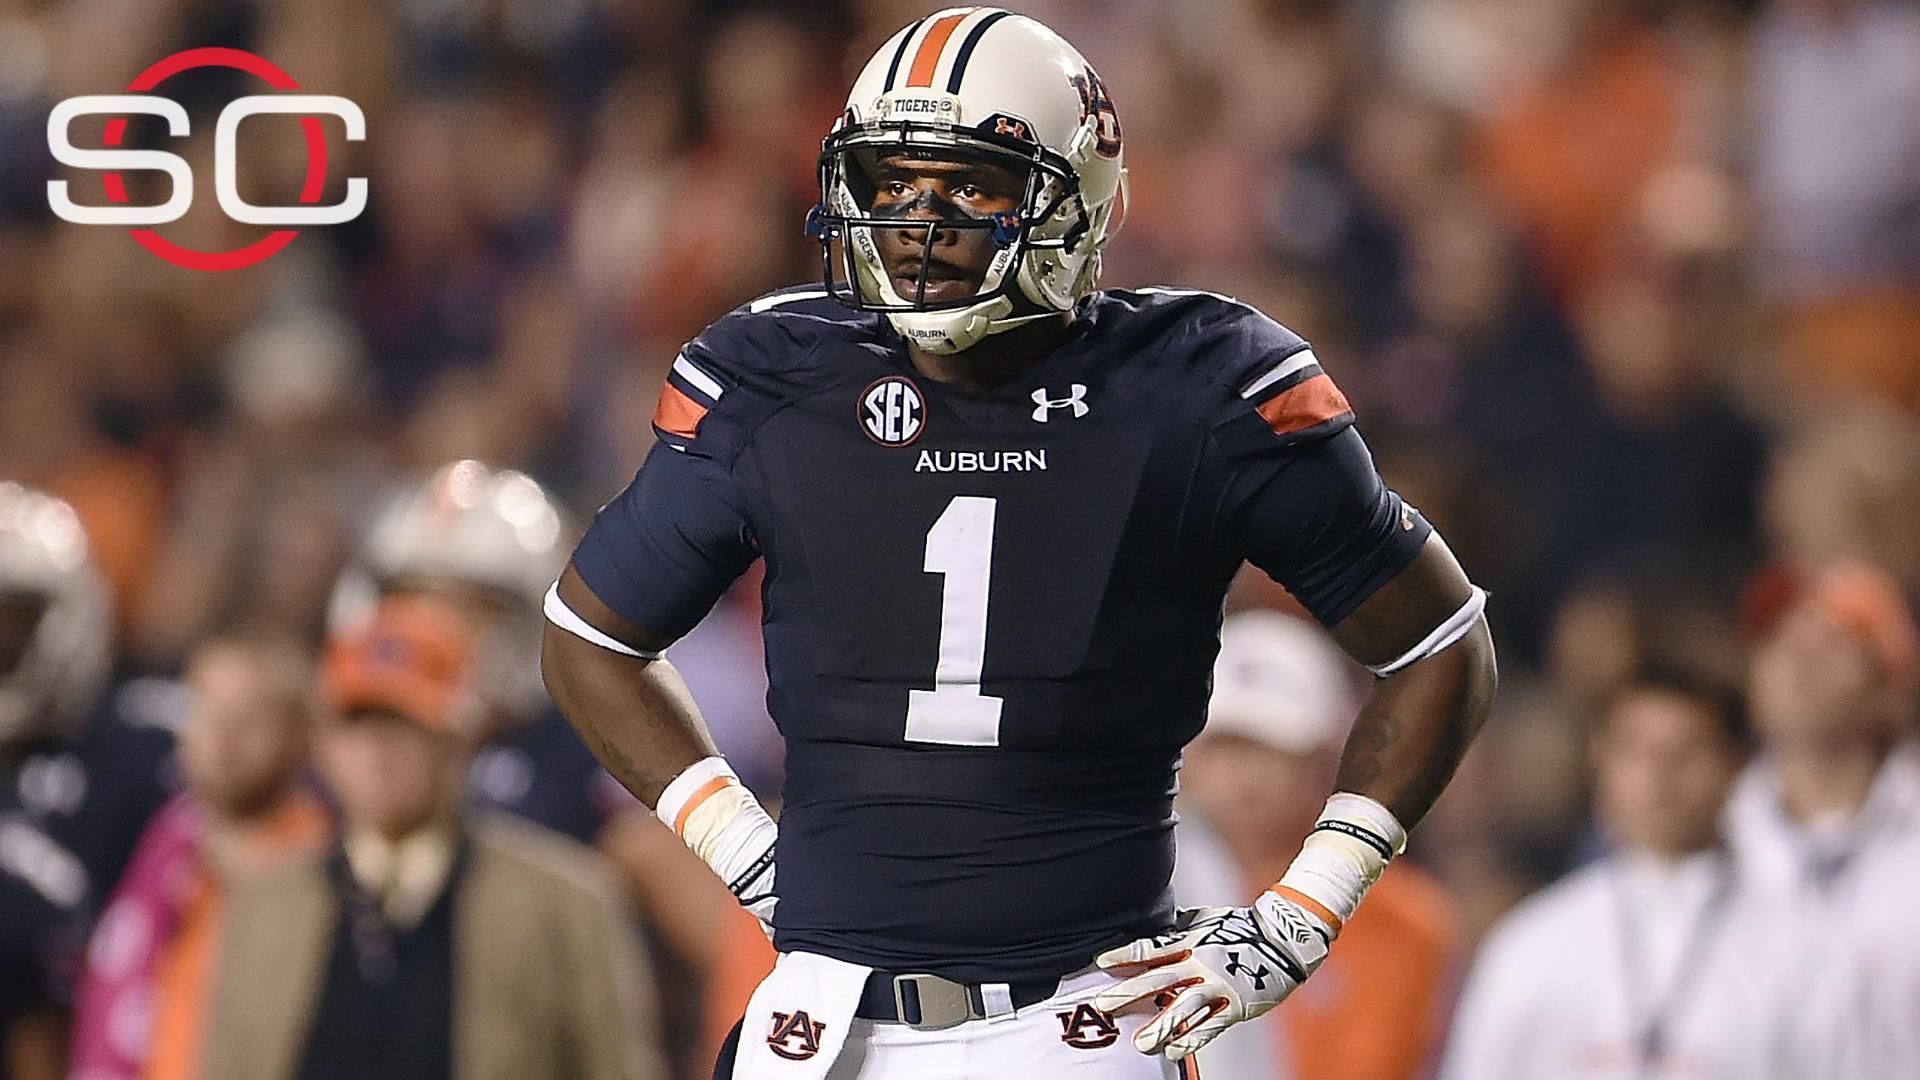 https://secure.espncdn.com/combiner/i?img=/media/motion/2015/1006/dm_151006_ncf_auburn_williams_dismissed/dm_151006_ncf_auburn_williams_dismissed.jpg